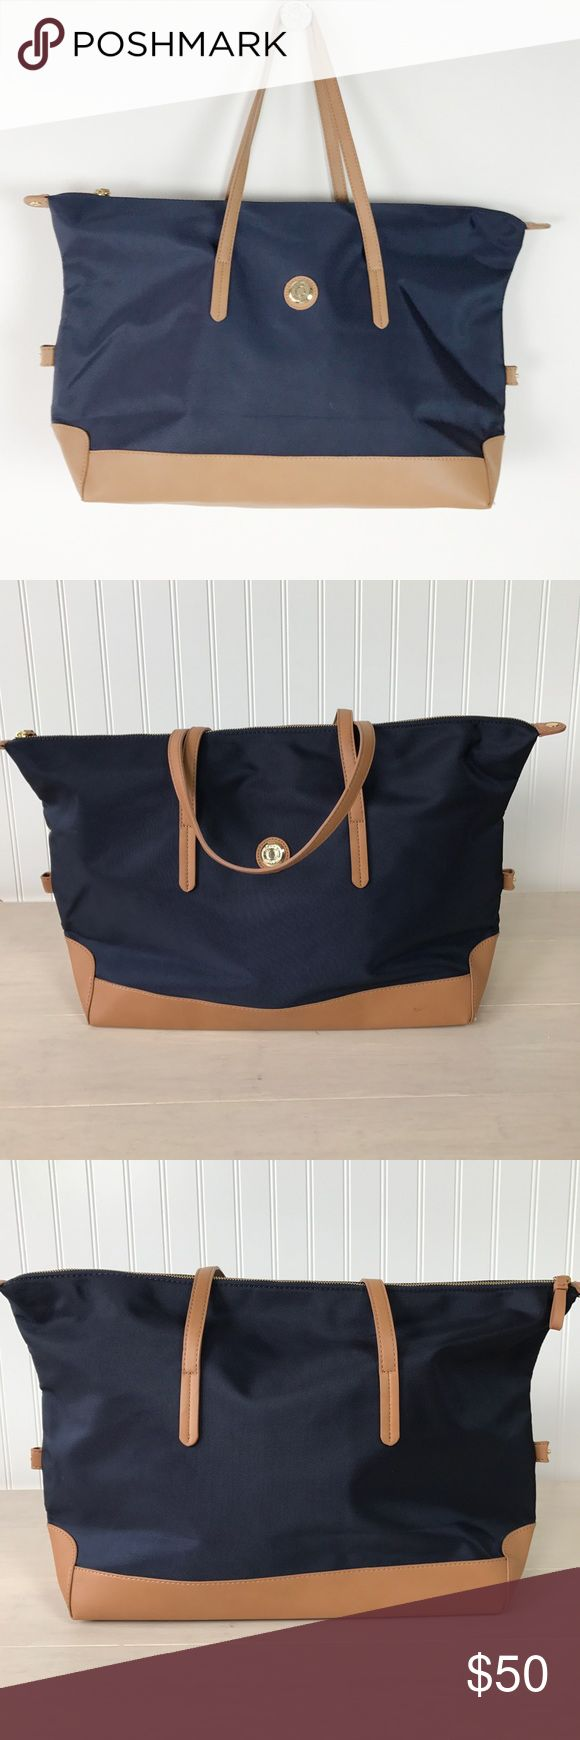 Tommy Hilfiger tote bag! Navy blue with tan trim. Never been carried. Excellent condition. Perfect for weekend travel! Tommy Hilfiger Bags Totes